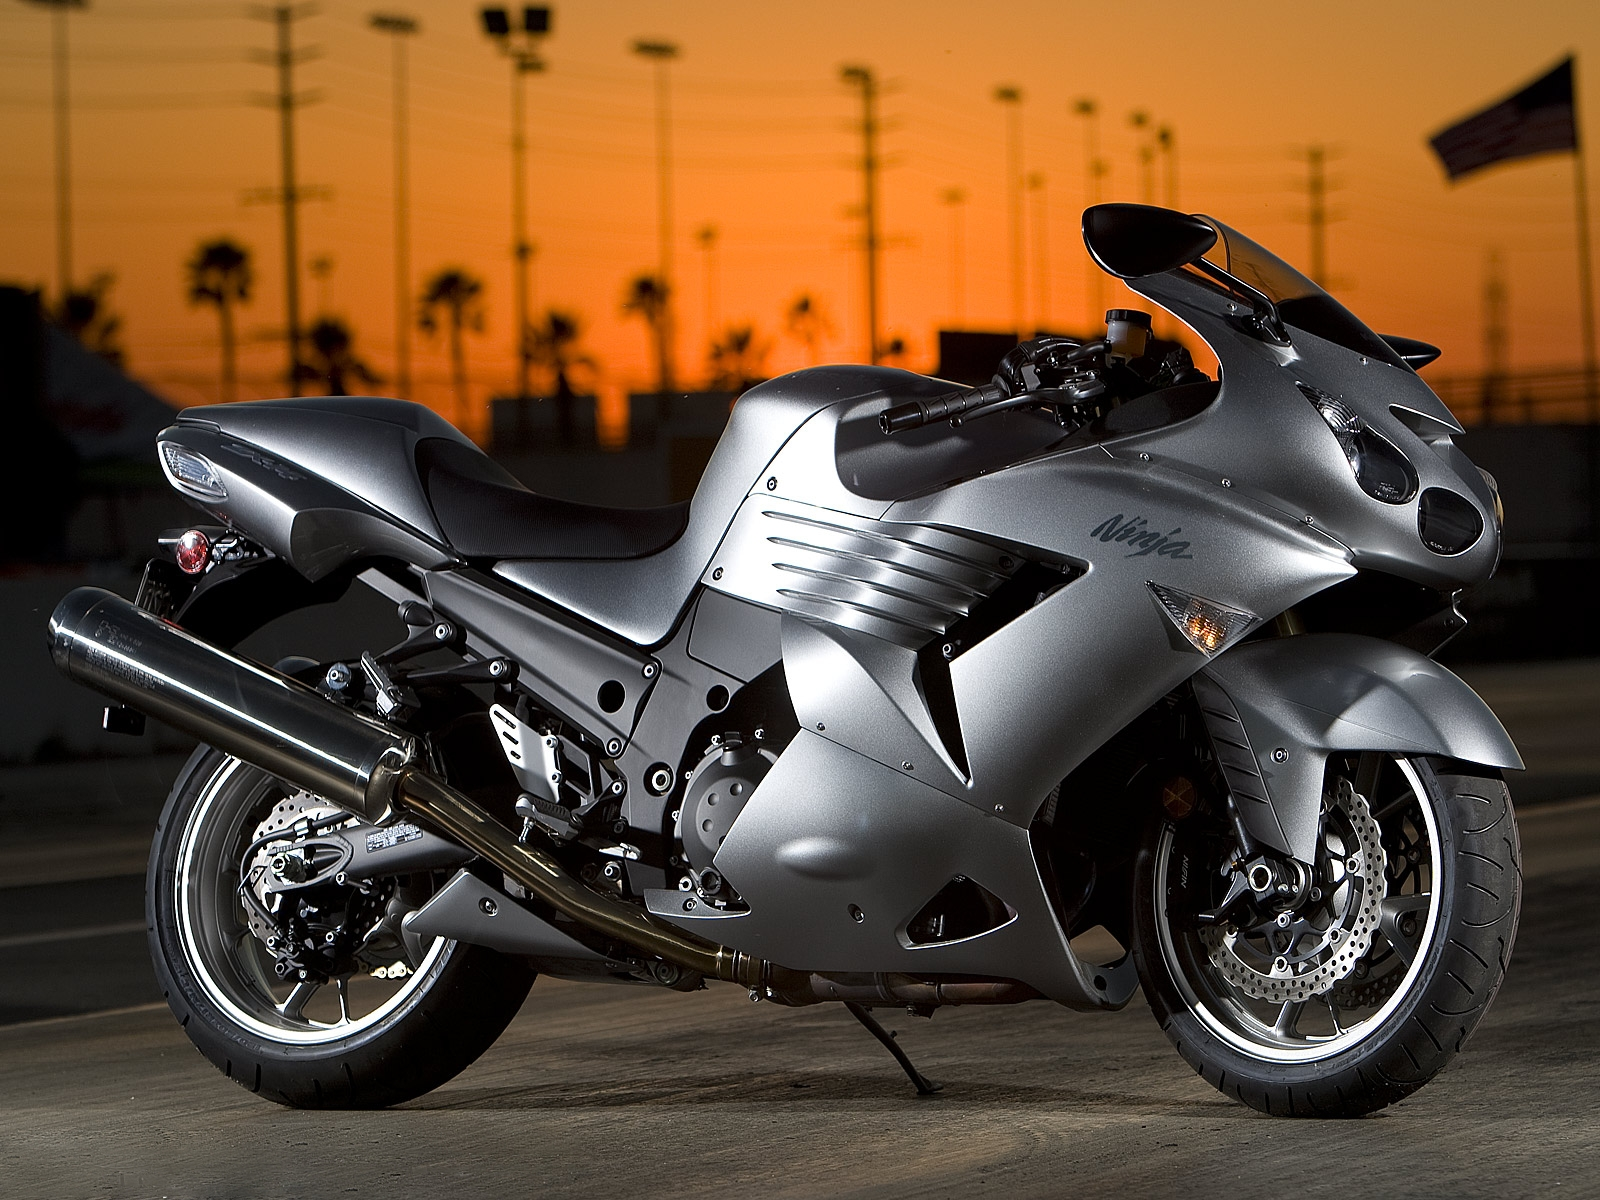 Top 10 Fastest Heavy Motorbikes in the World 2014